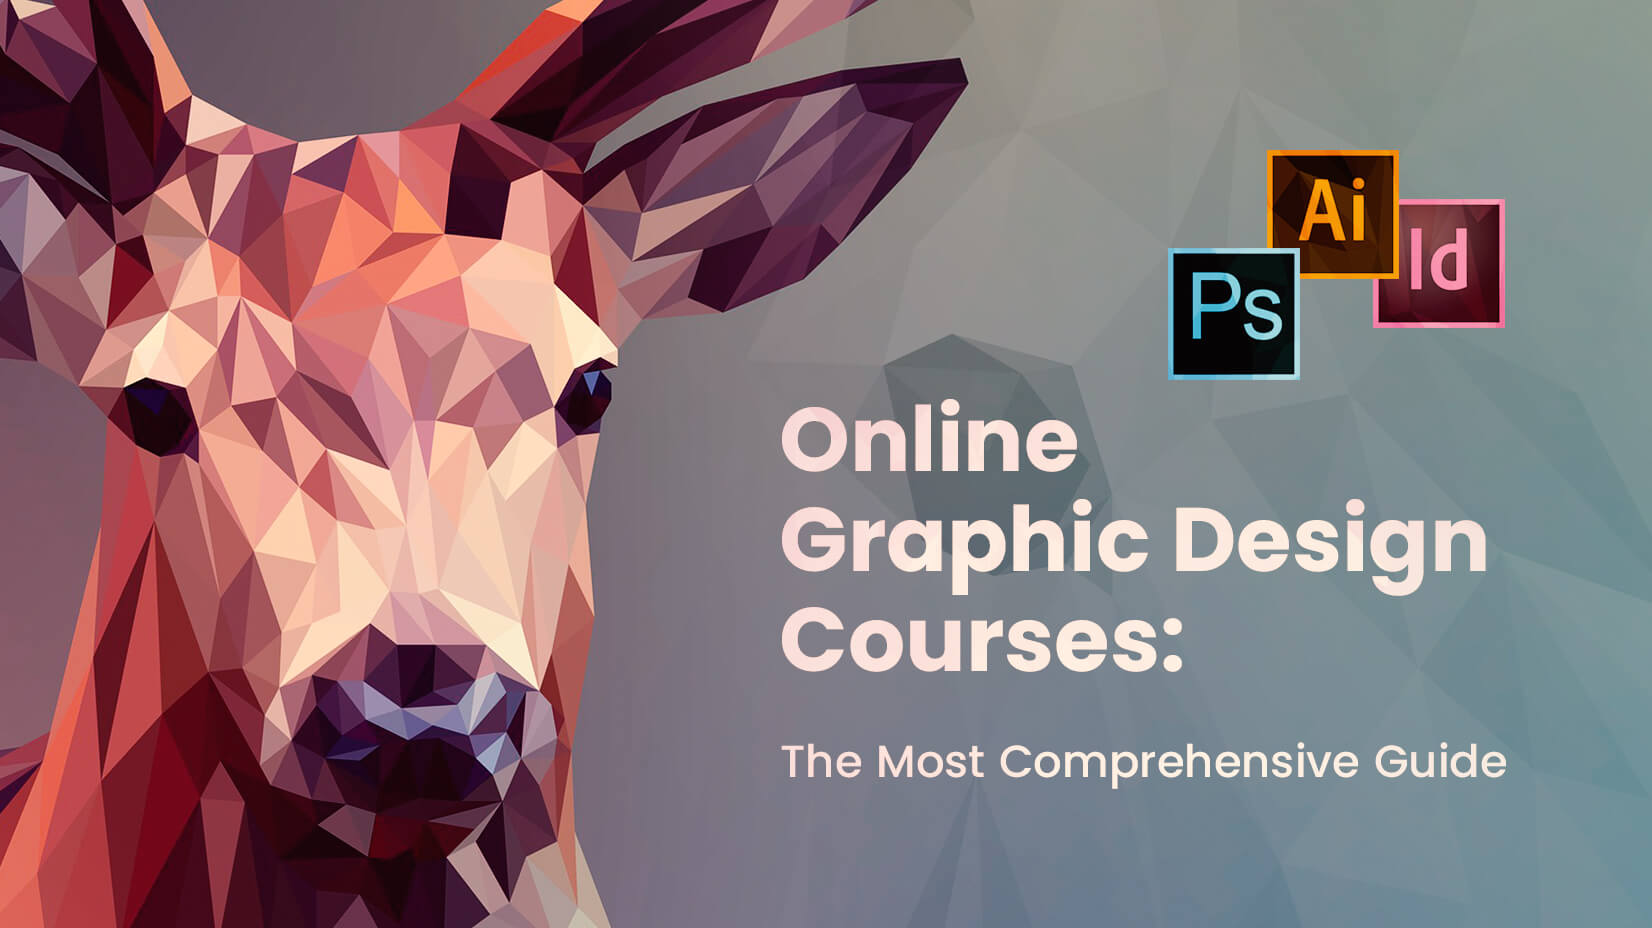 Online Graphic Design Courses: The Most Comprehensive Guide